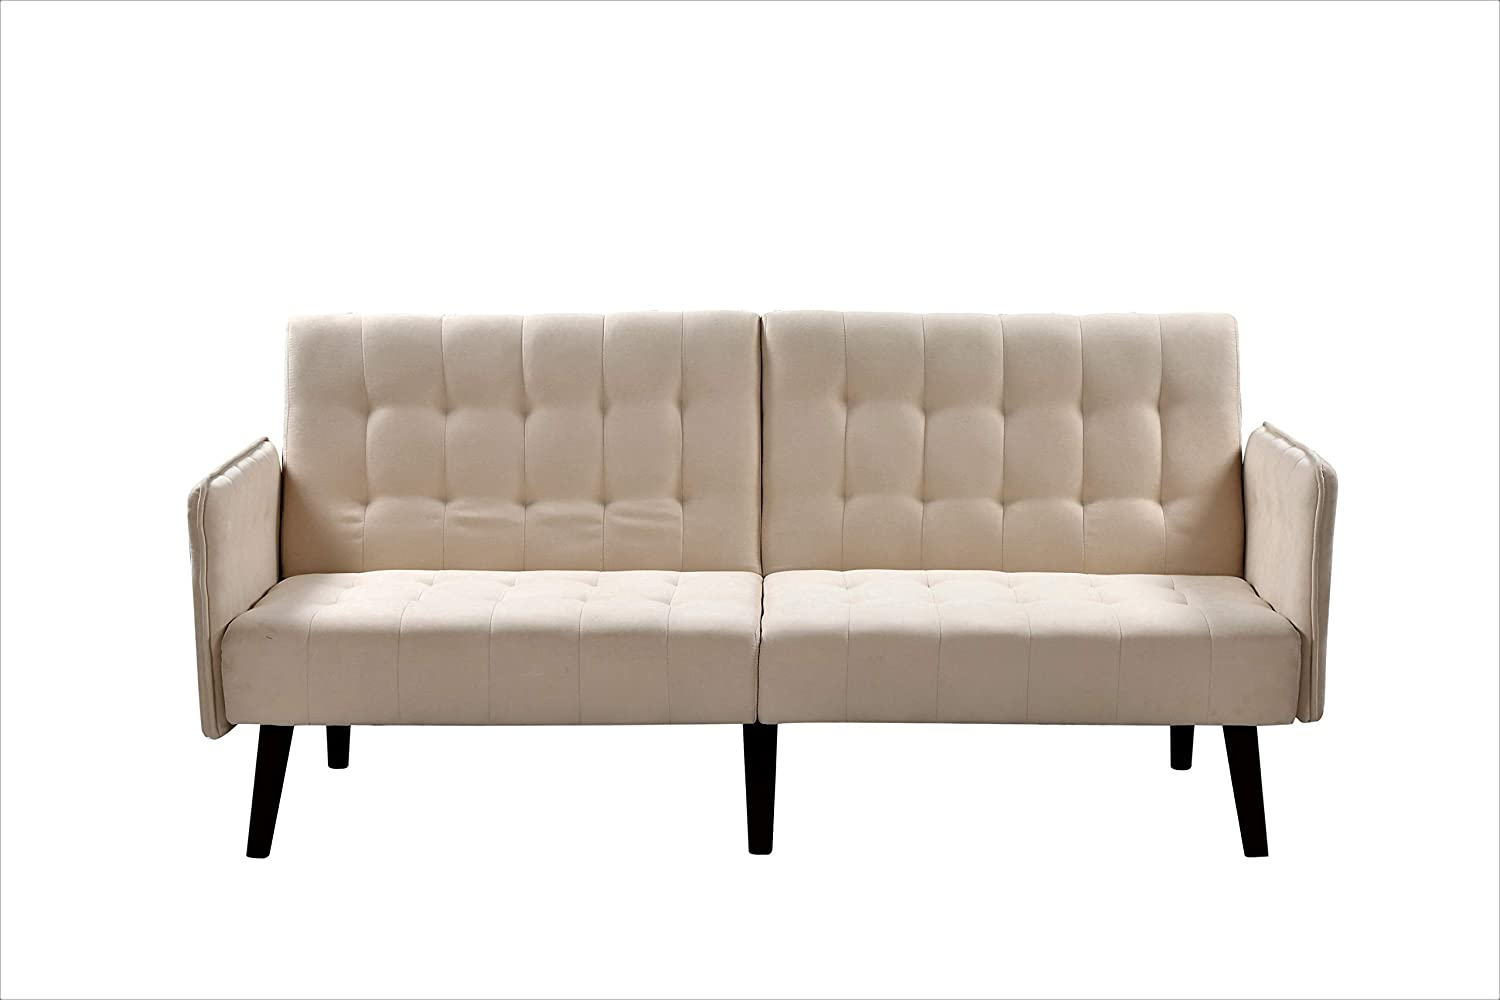 Container Furniture Direct Hashimoto Modern Upholstered Living Room Convertible Sofa Bed, 78